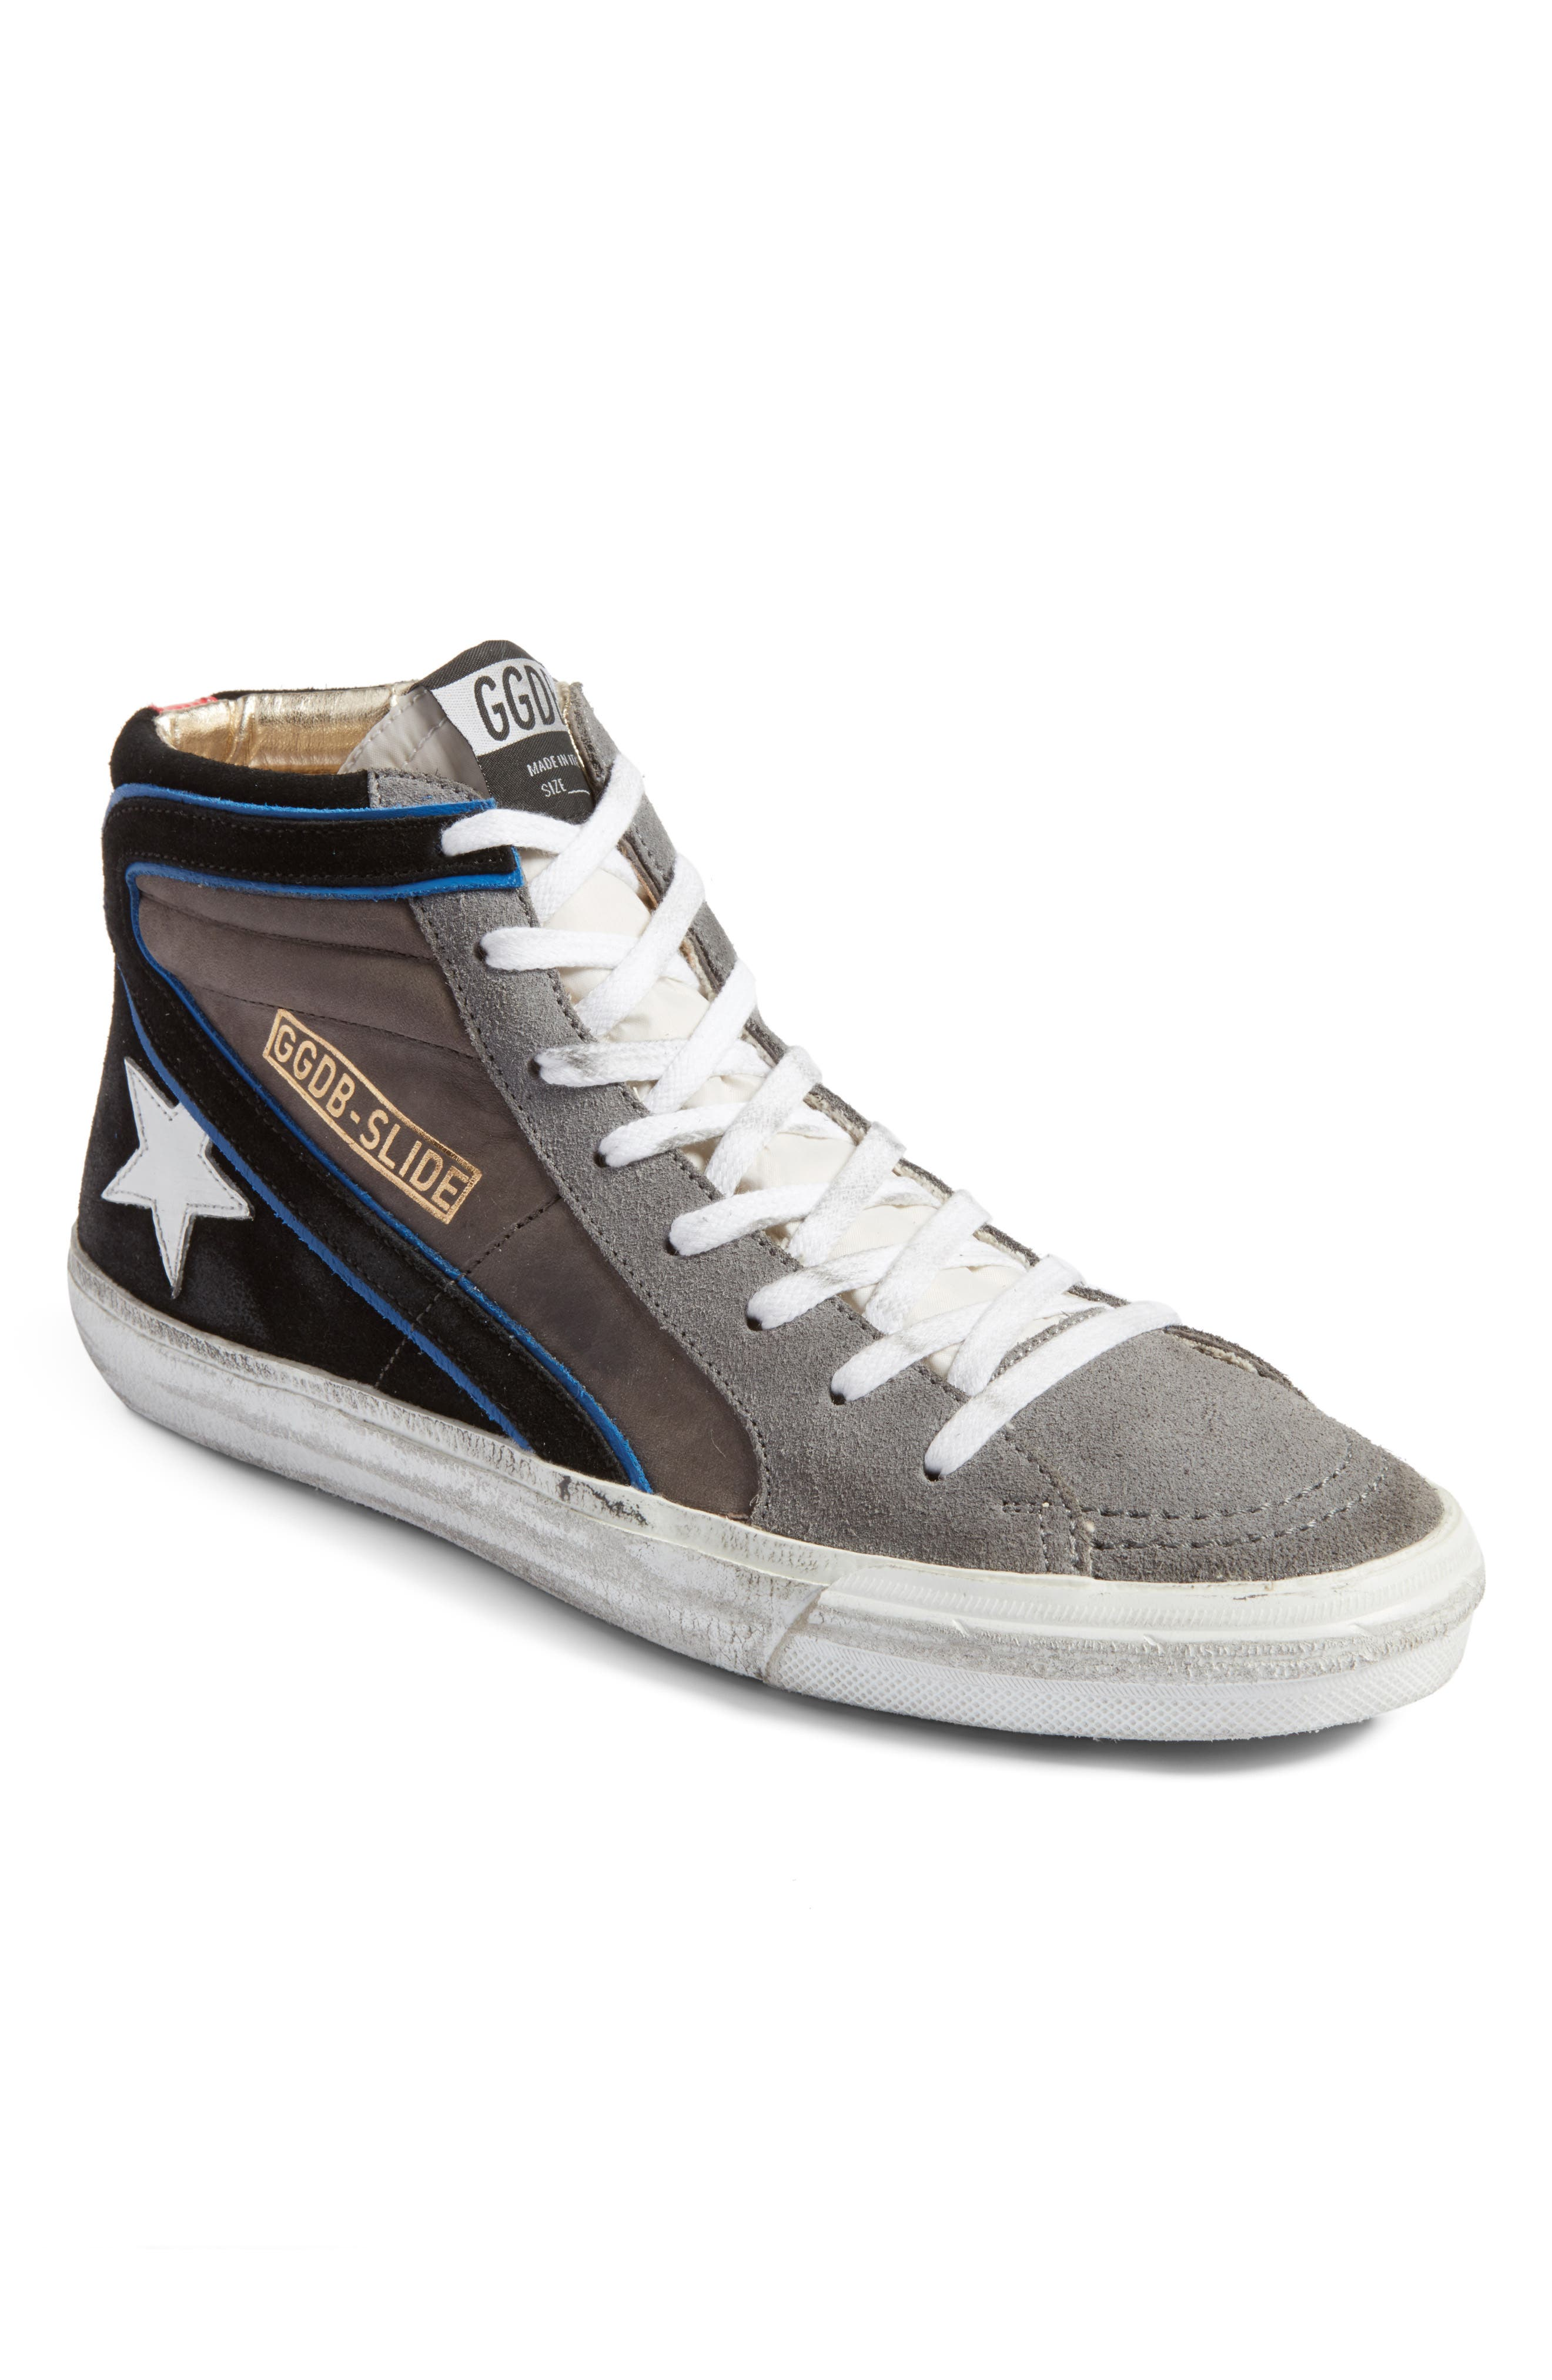 Slide High Top Sneaker,                         Main,                         color, Grey/ Blue Suede